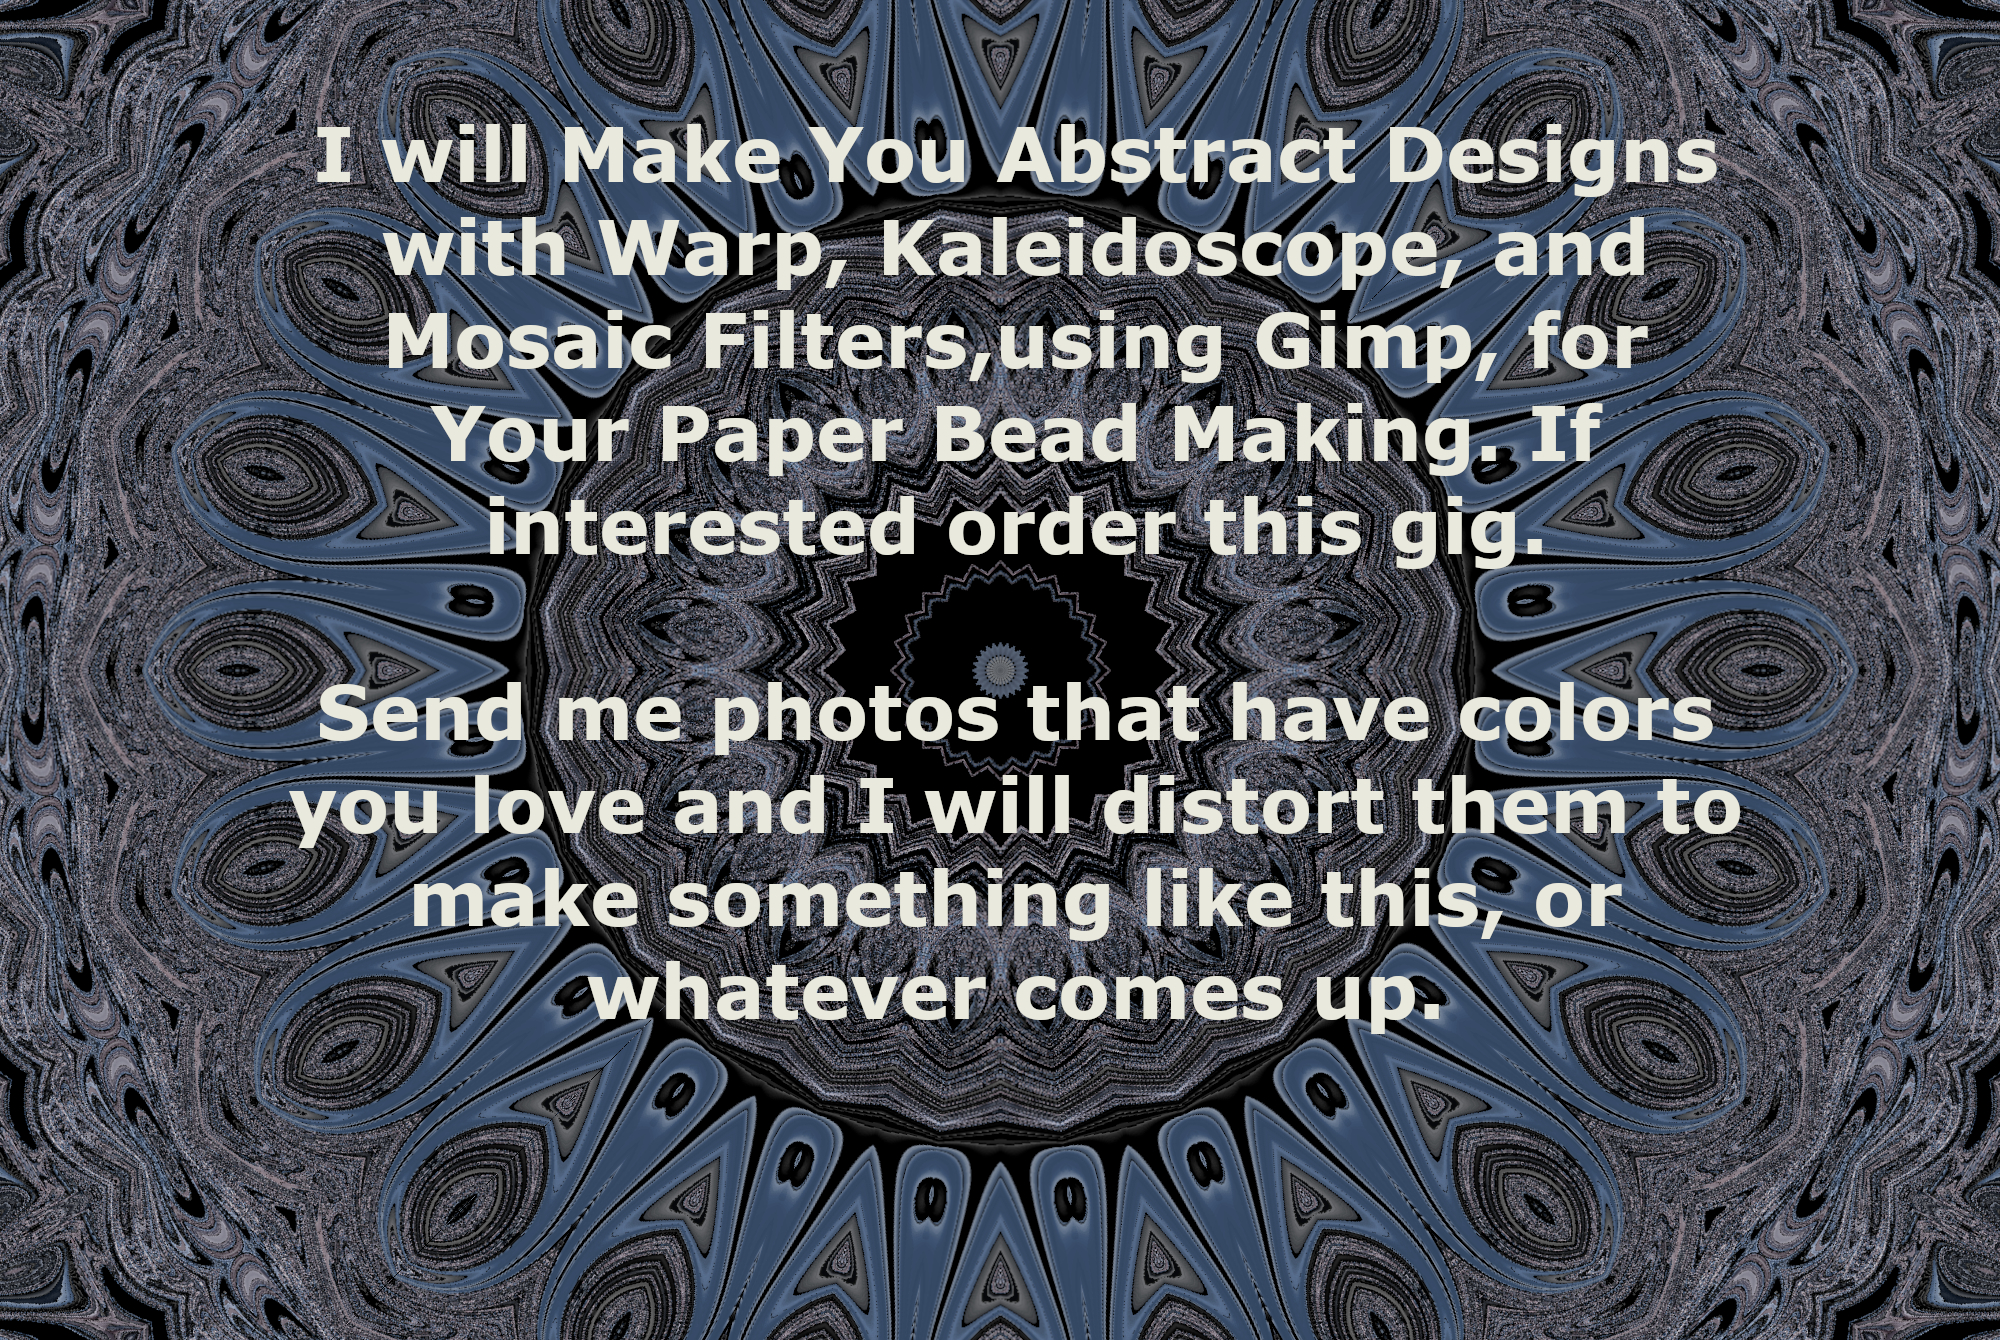 I Will Make you 10 Abstract Designs Using Gimp for your Paper Bead Making